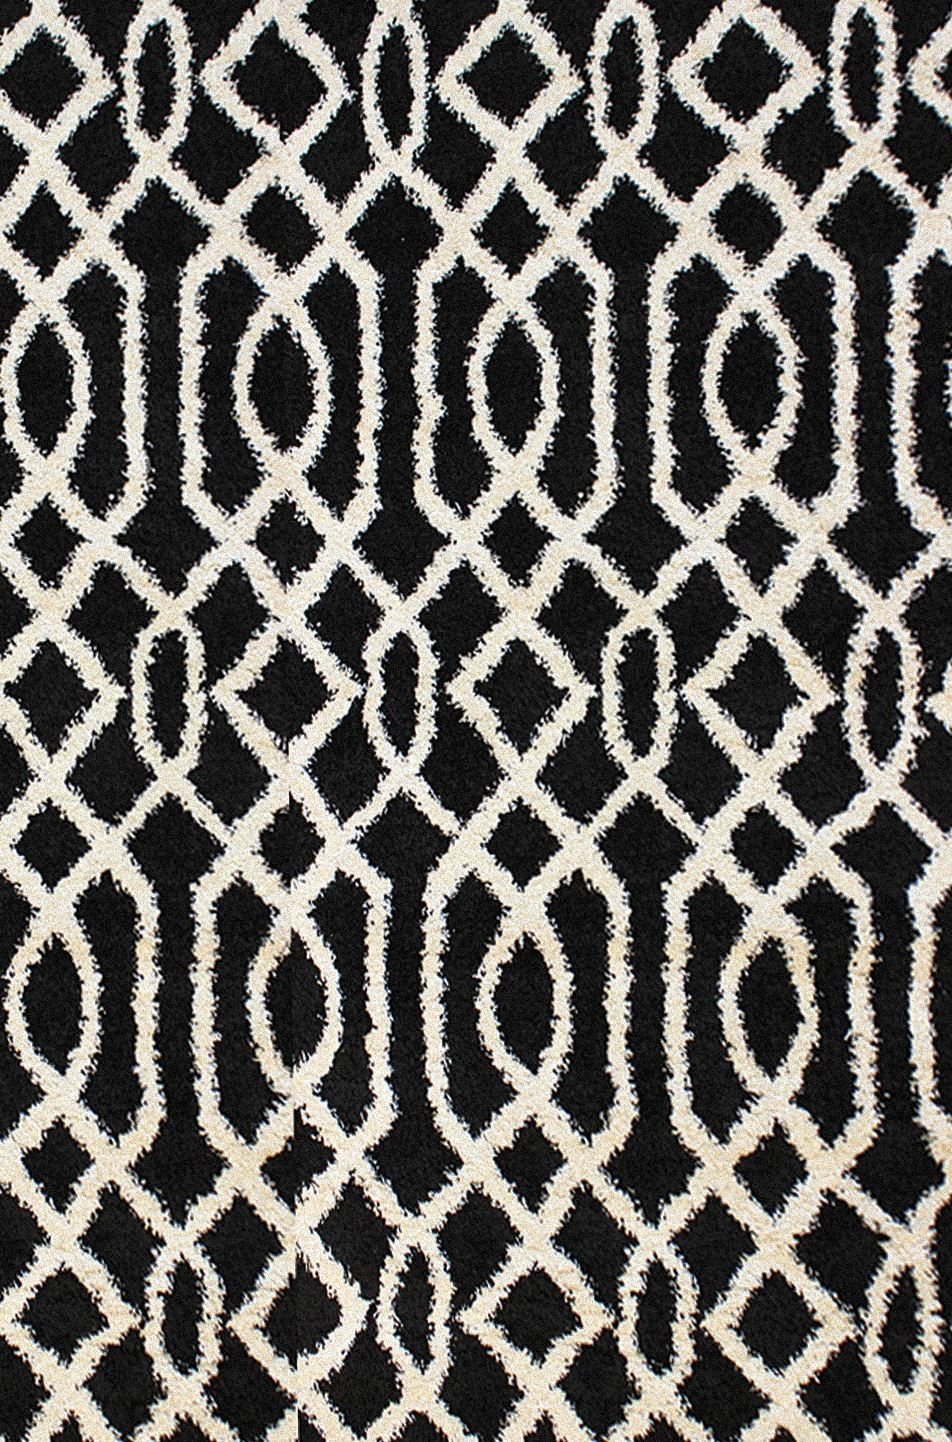 Dynamic Rugs Passion Geometric Black 6203 Area Rug